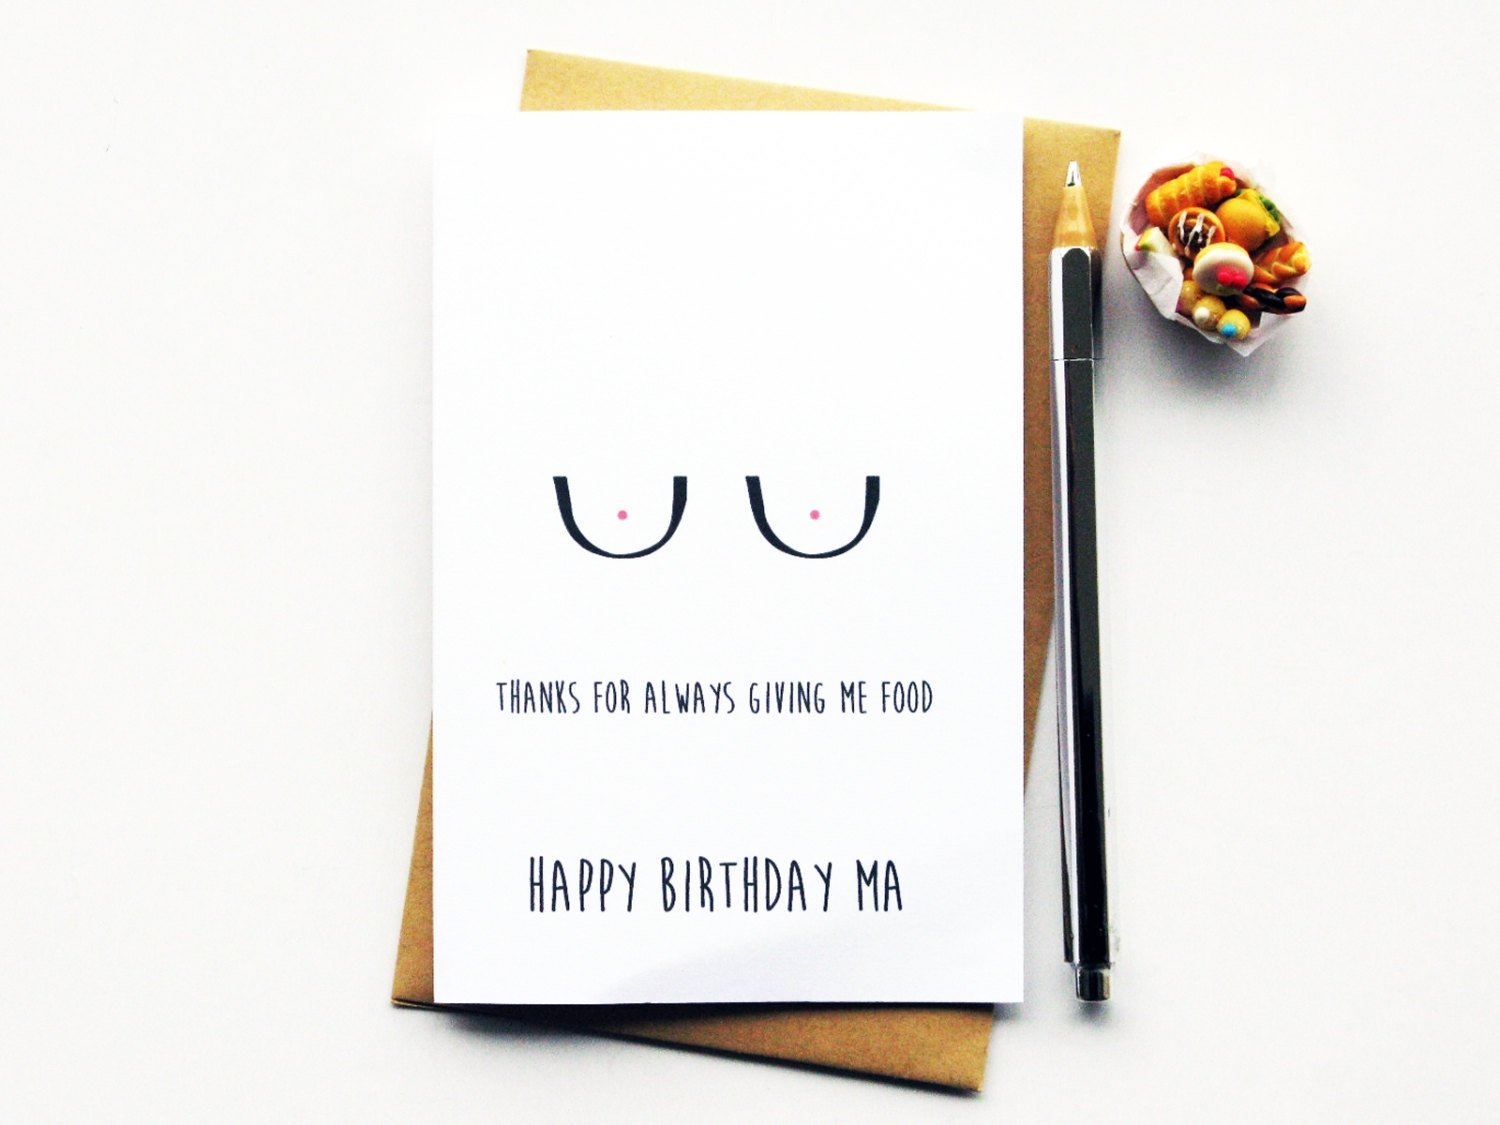 10 Amazing Birthday Card Ideas For Mom Funny Cards Within Ucwords Design